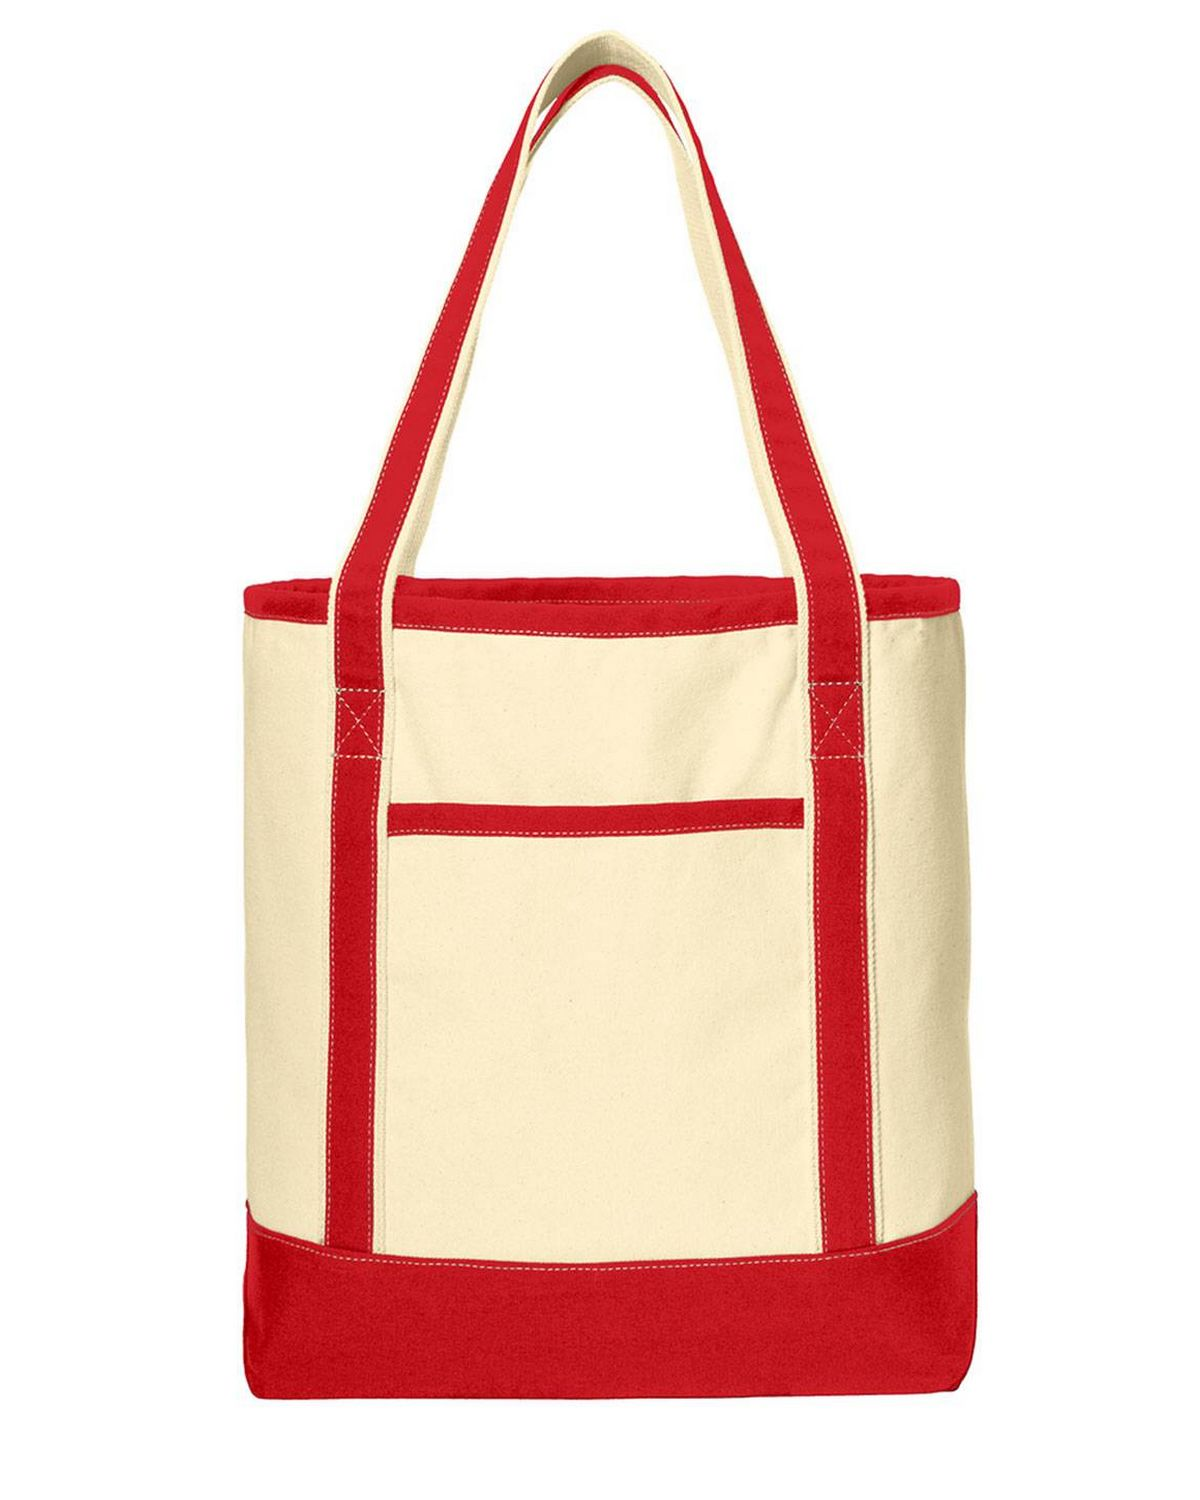 Port Authority BG413 Large Cotton Canvas Boat Tote